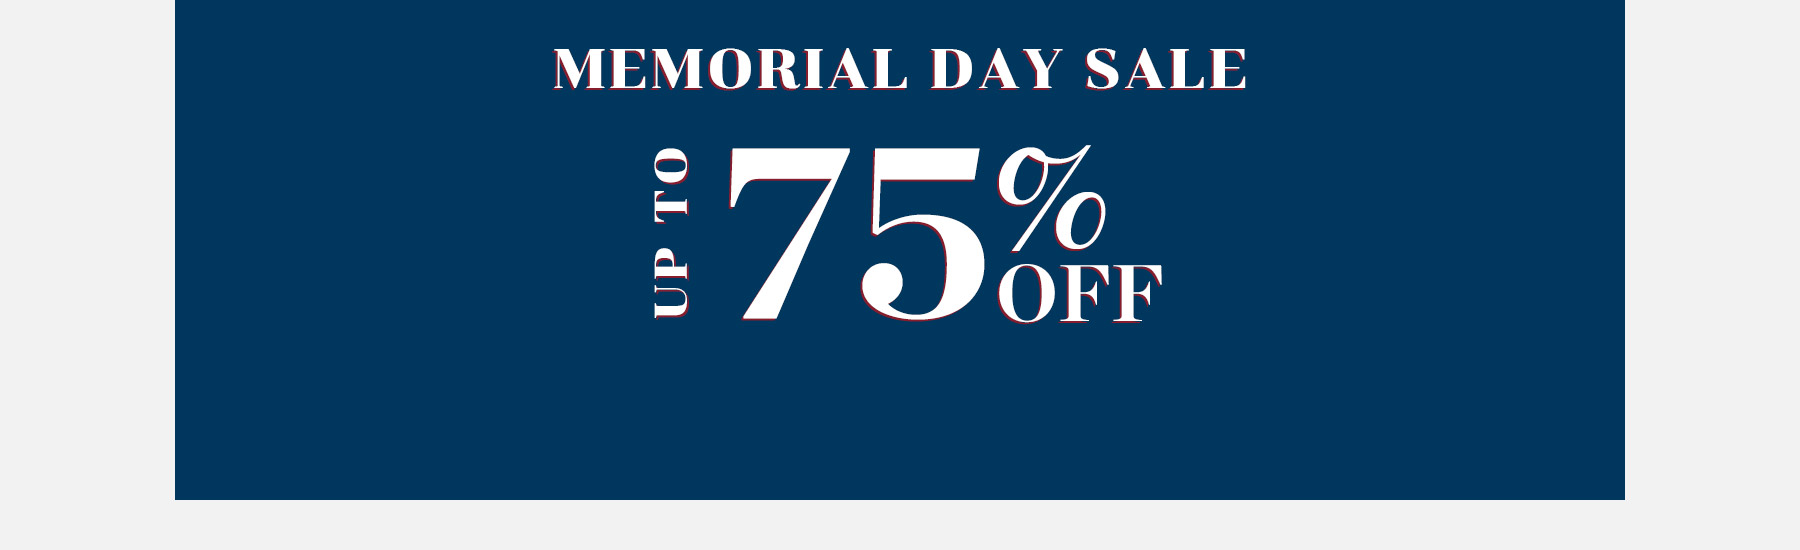 Memorial Day Sale Up To 75% Off